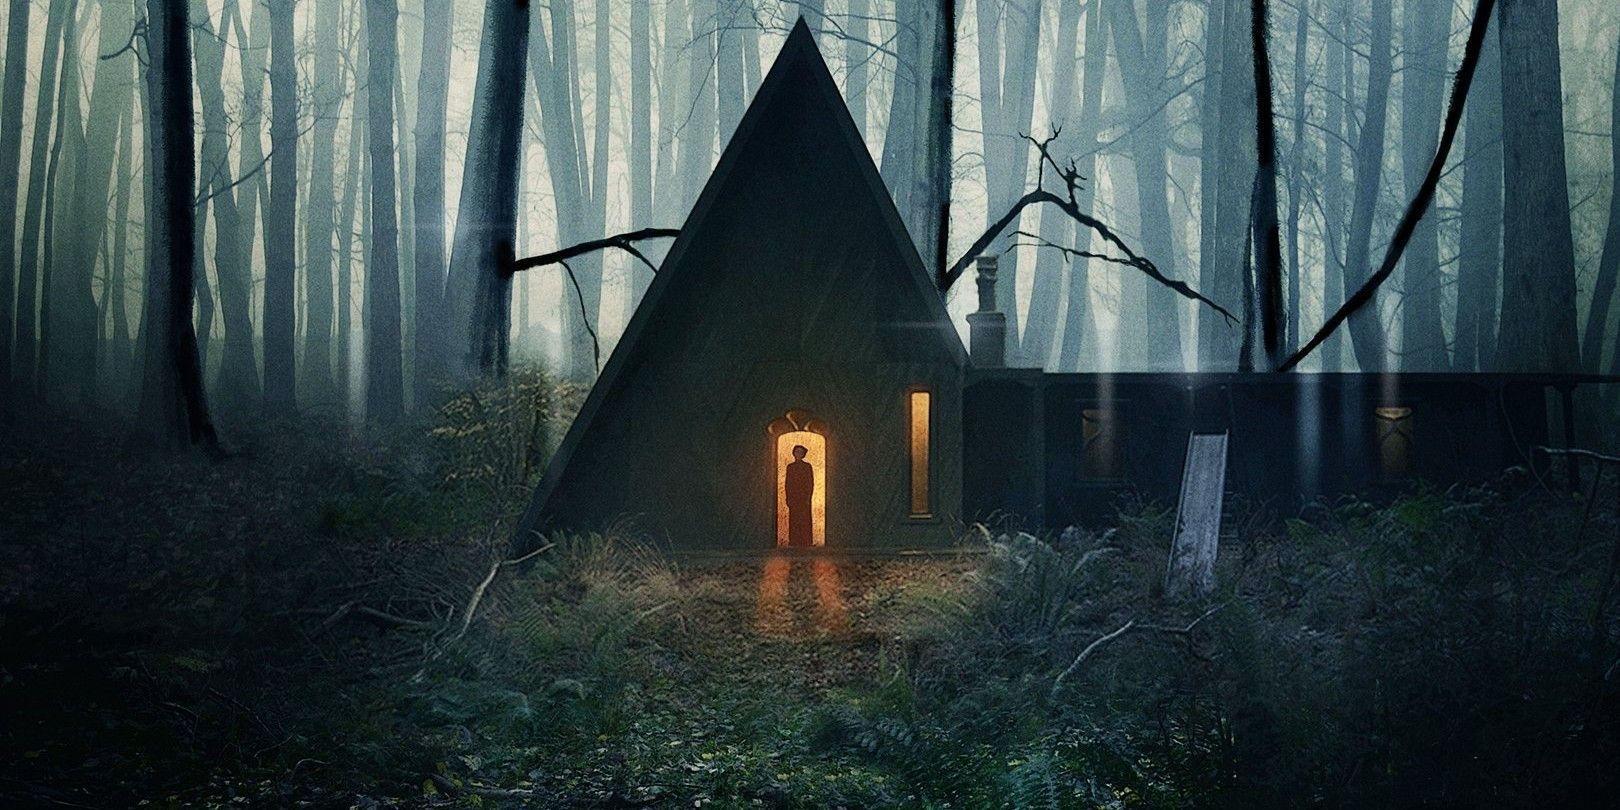 2020 Movie Posters: Gretel And Hansel (2020) Trailer: IT Star Leads Horror